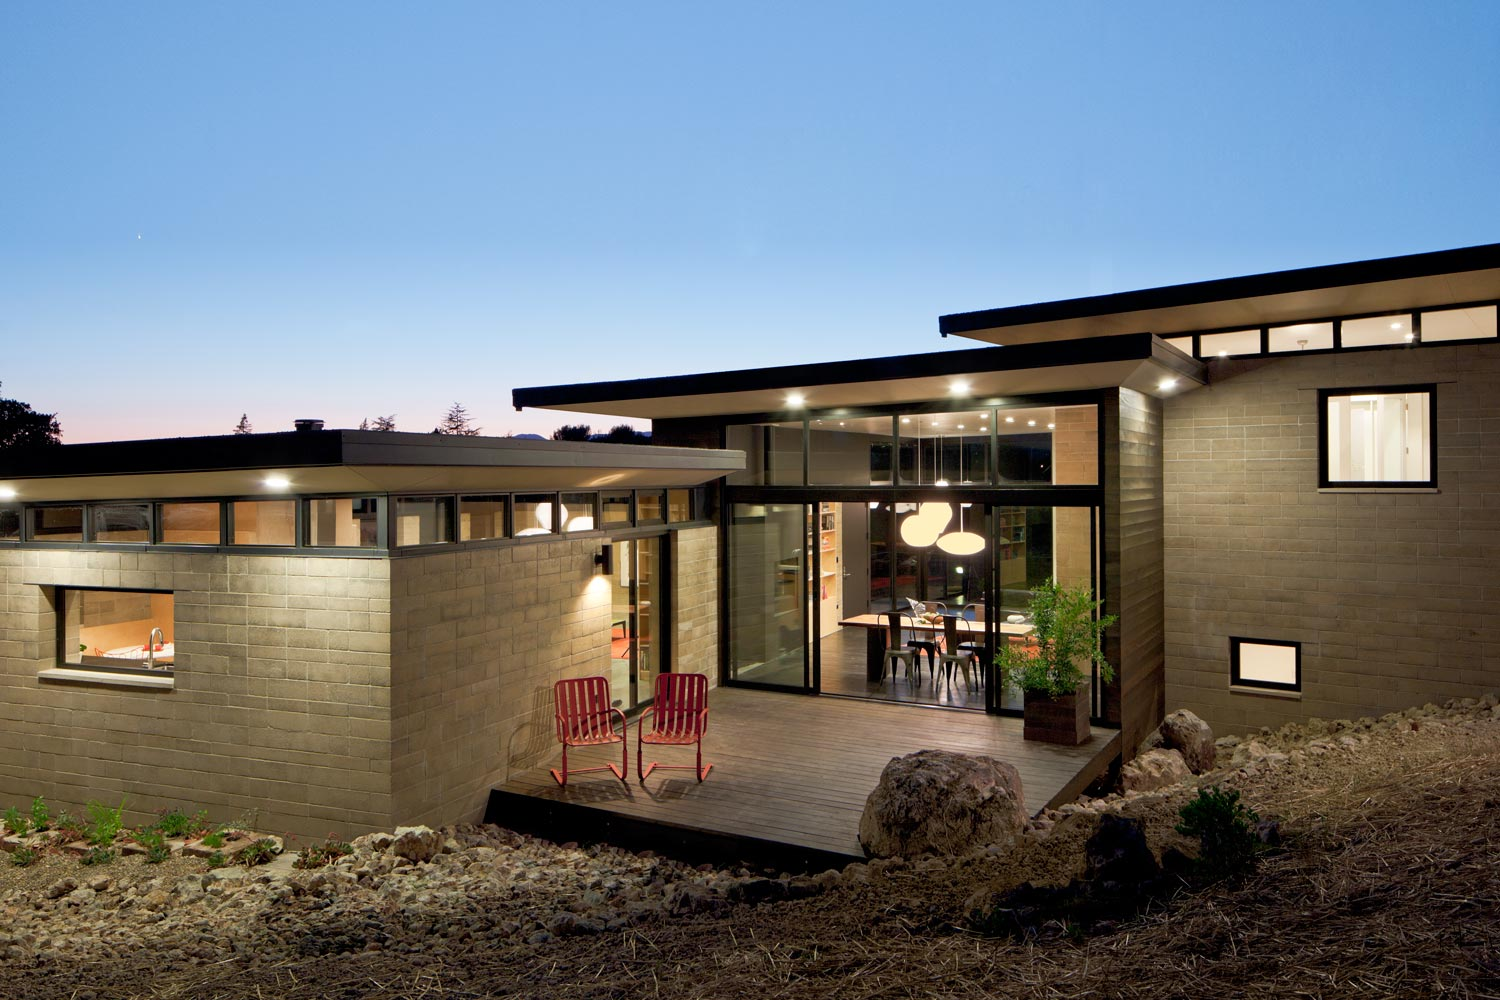 Rammed Earth Works - Original Builders - Consulting Services on stucco house plans for homes, solar house plans for homes, underground house plans for homes, cottage house plans for homes, metal house plans for homes, shipping container house plans for homes,